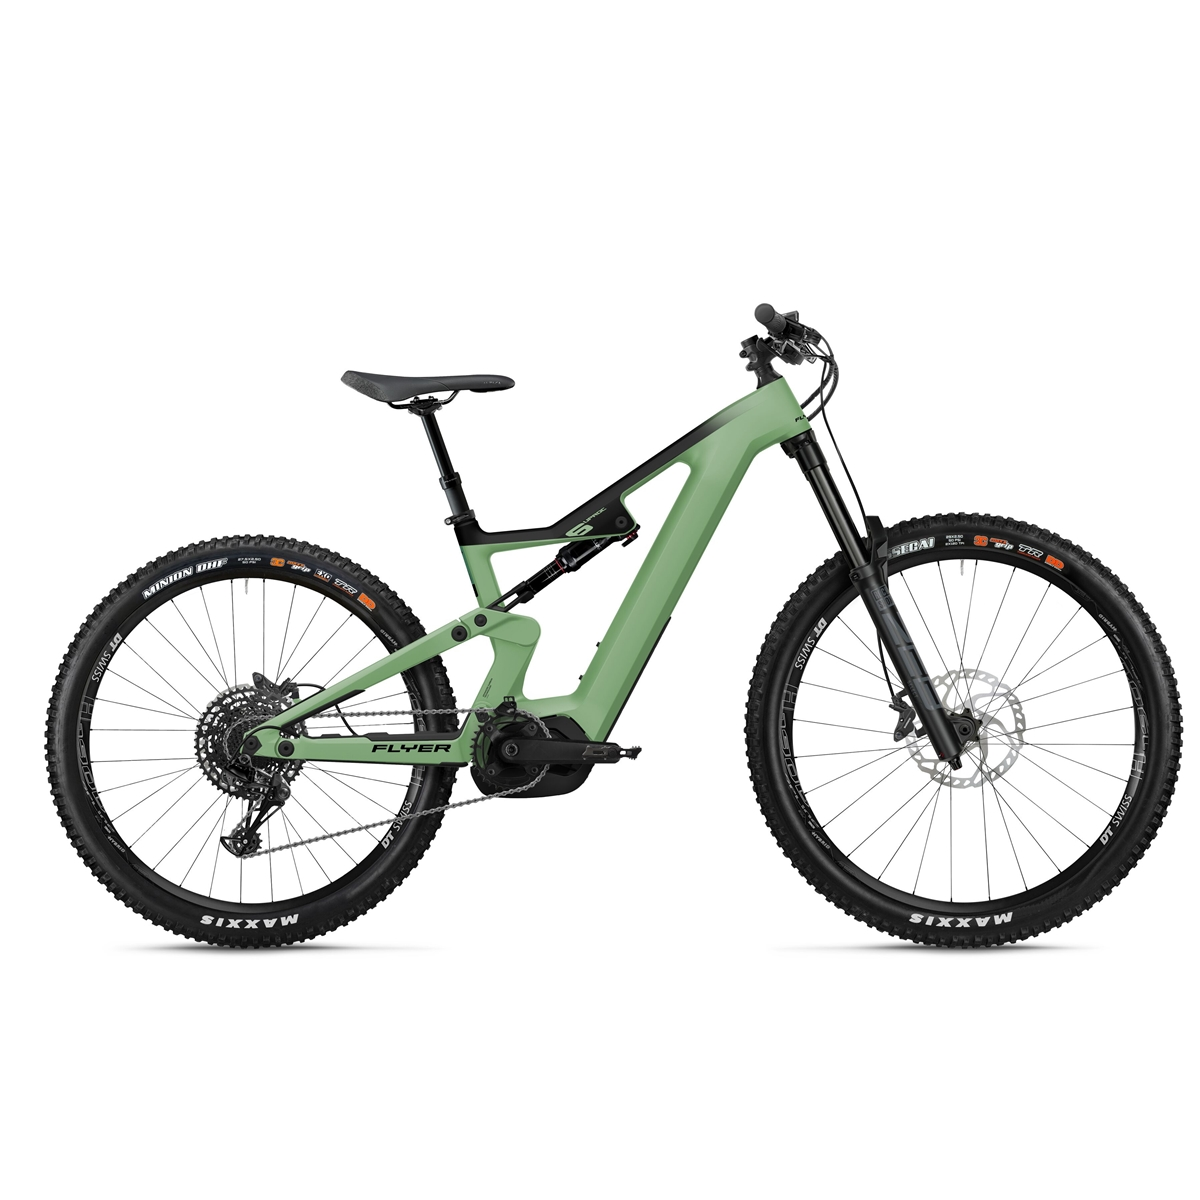 Uproc6 6.50 29''/27.5'' 170mm 12s 625Wh Bosch Performance CX Green 2021 Size S